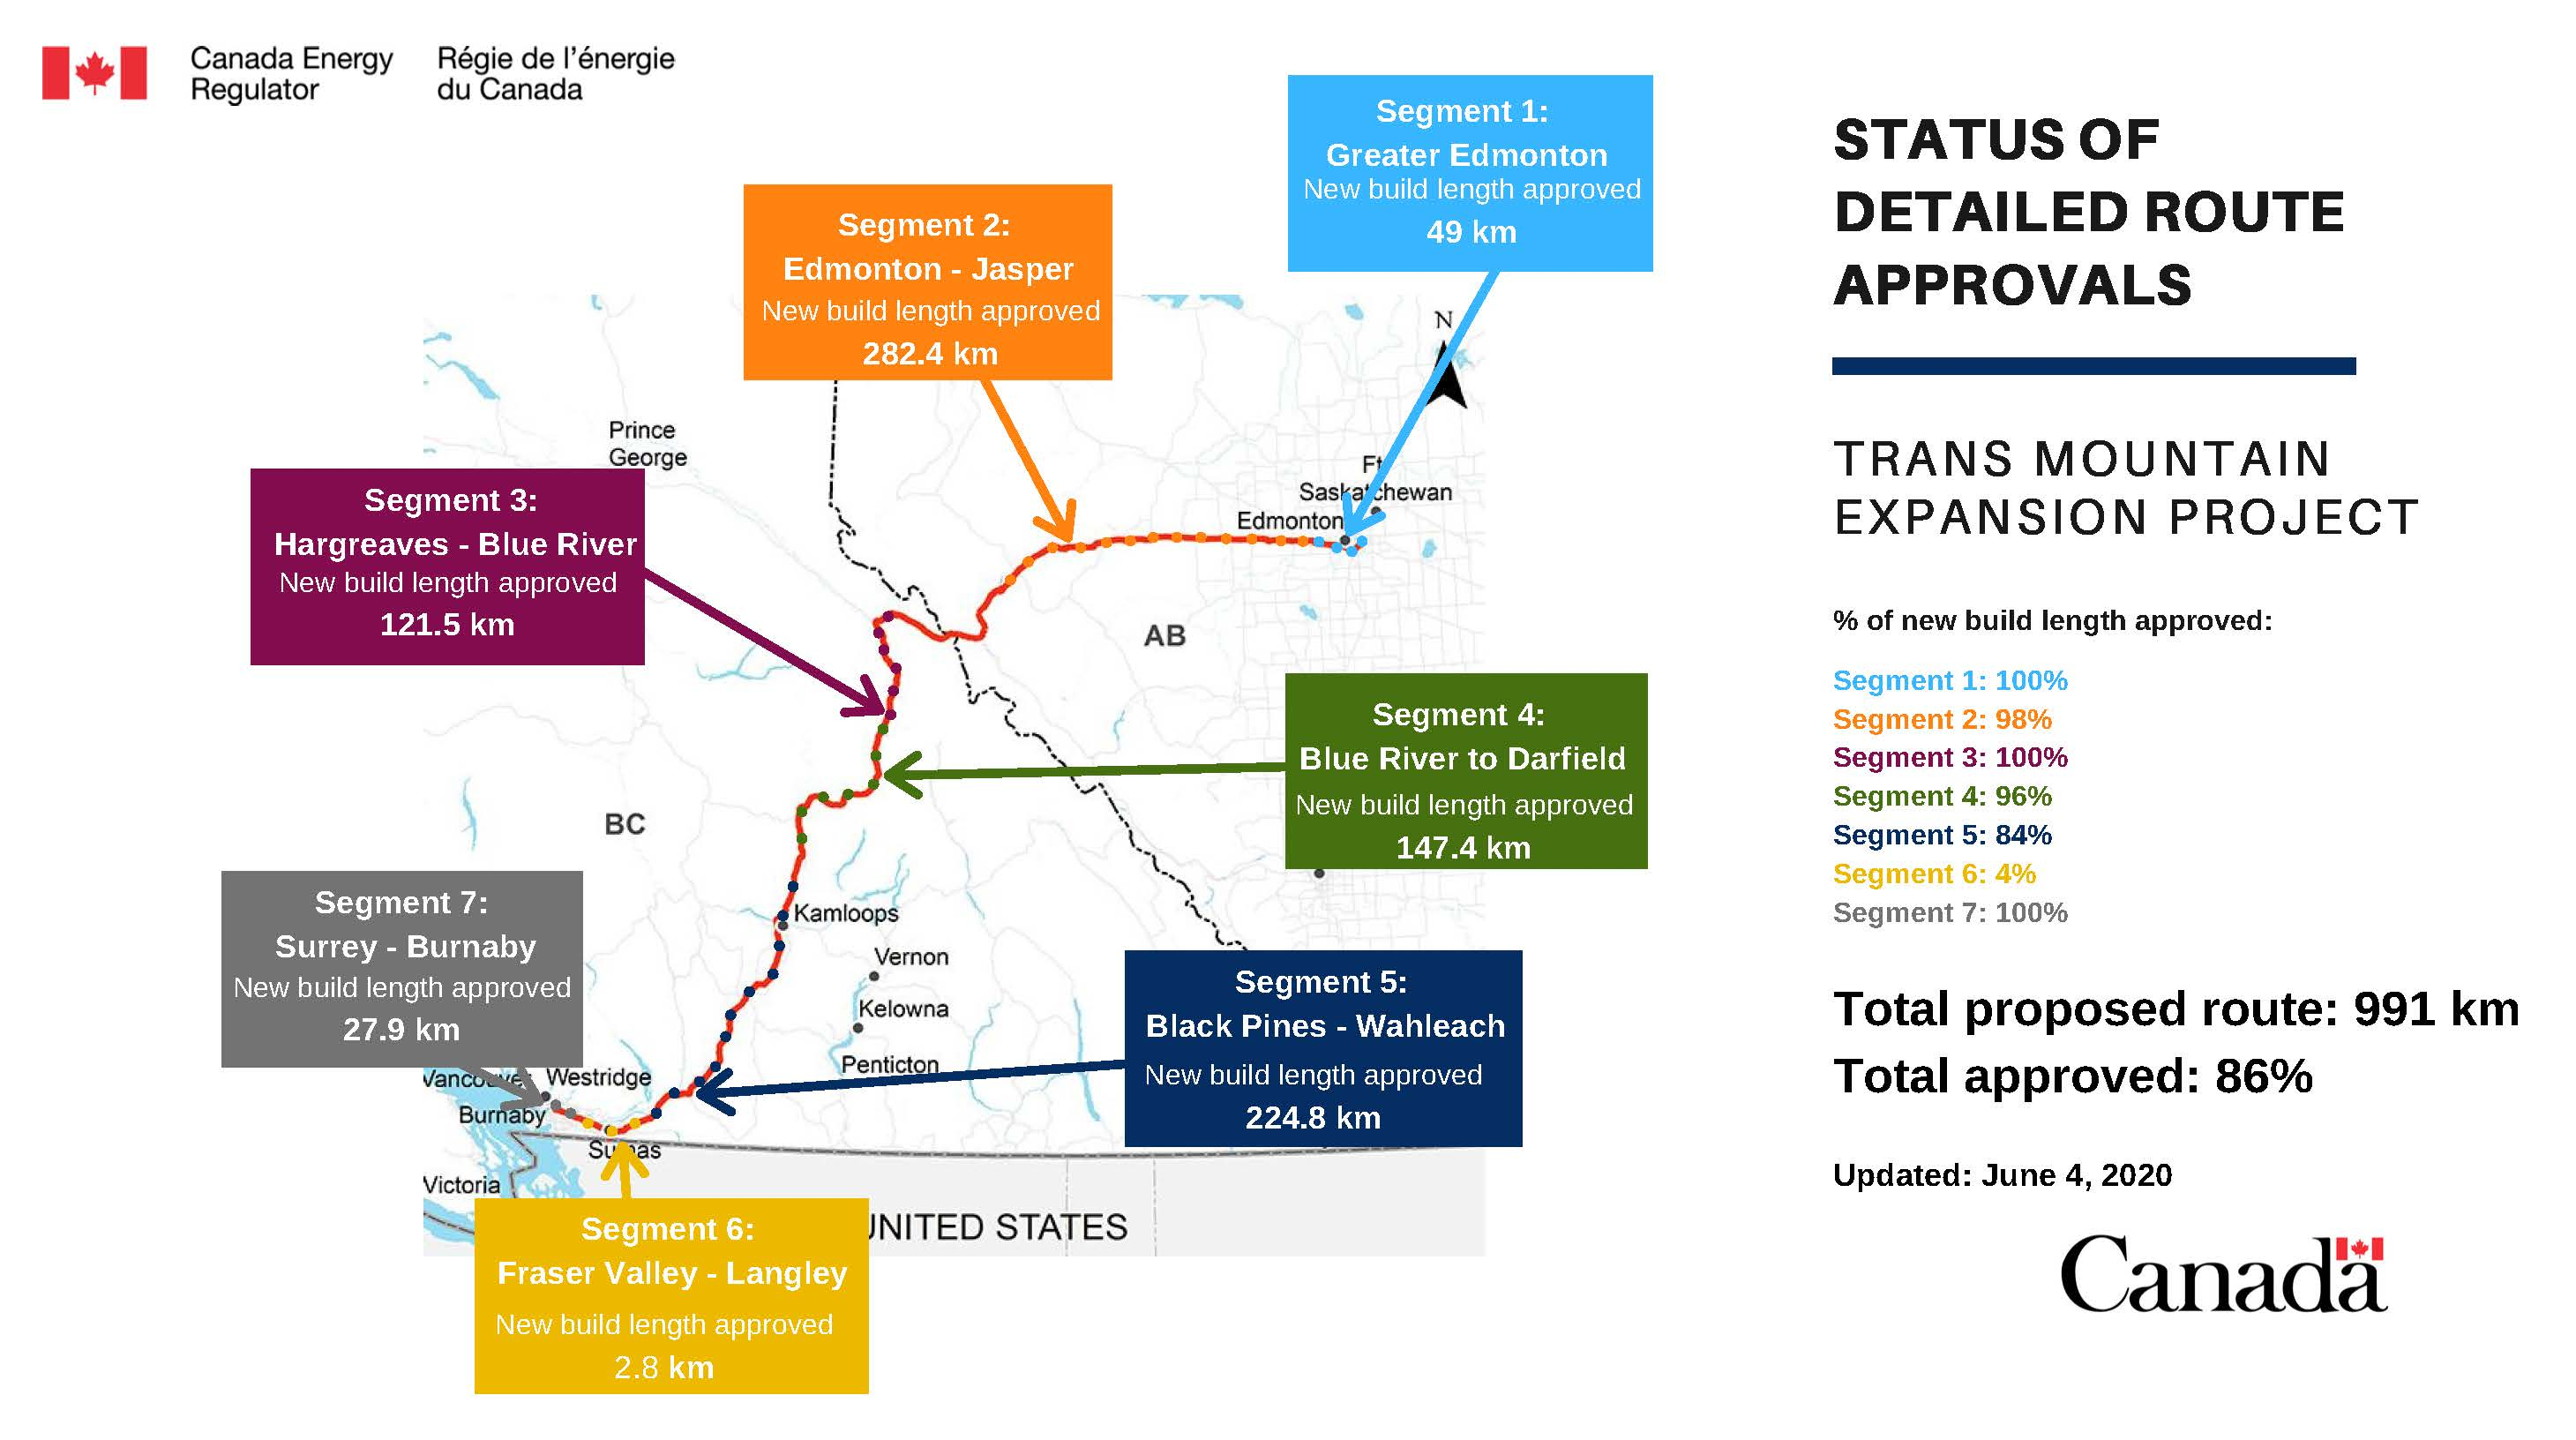 Status of 2019 detailed route approvals